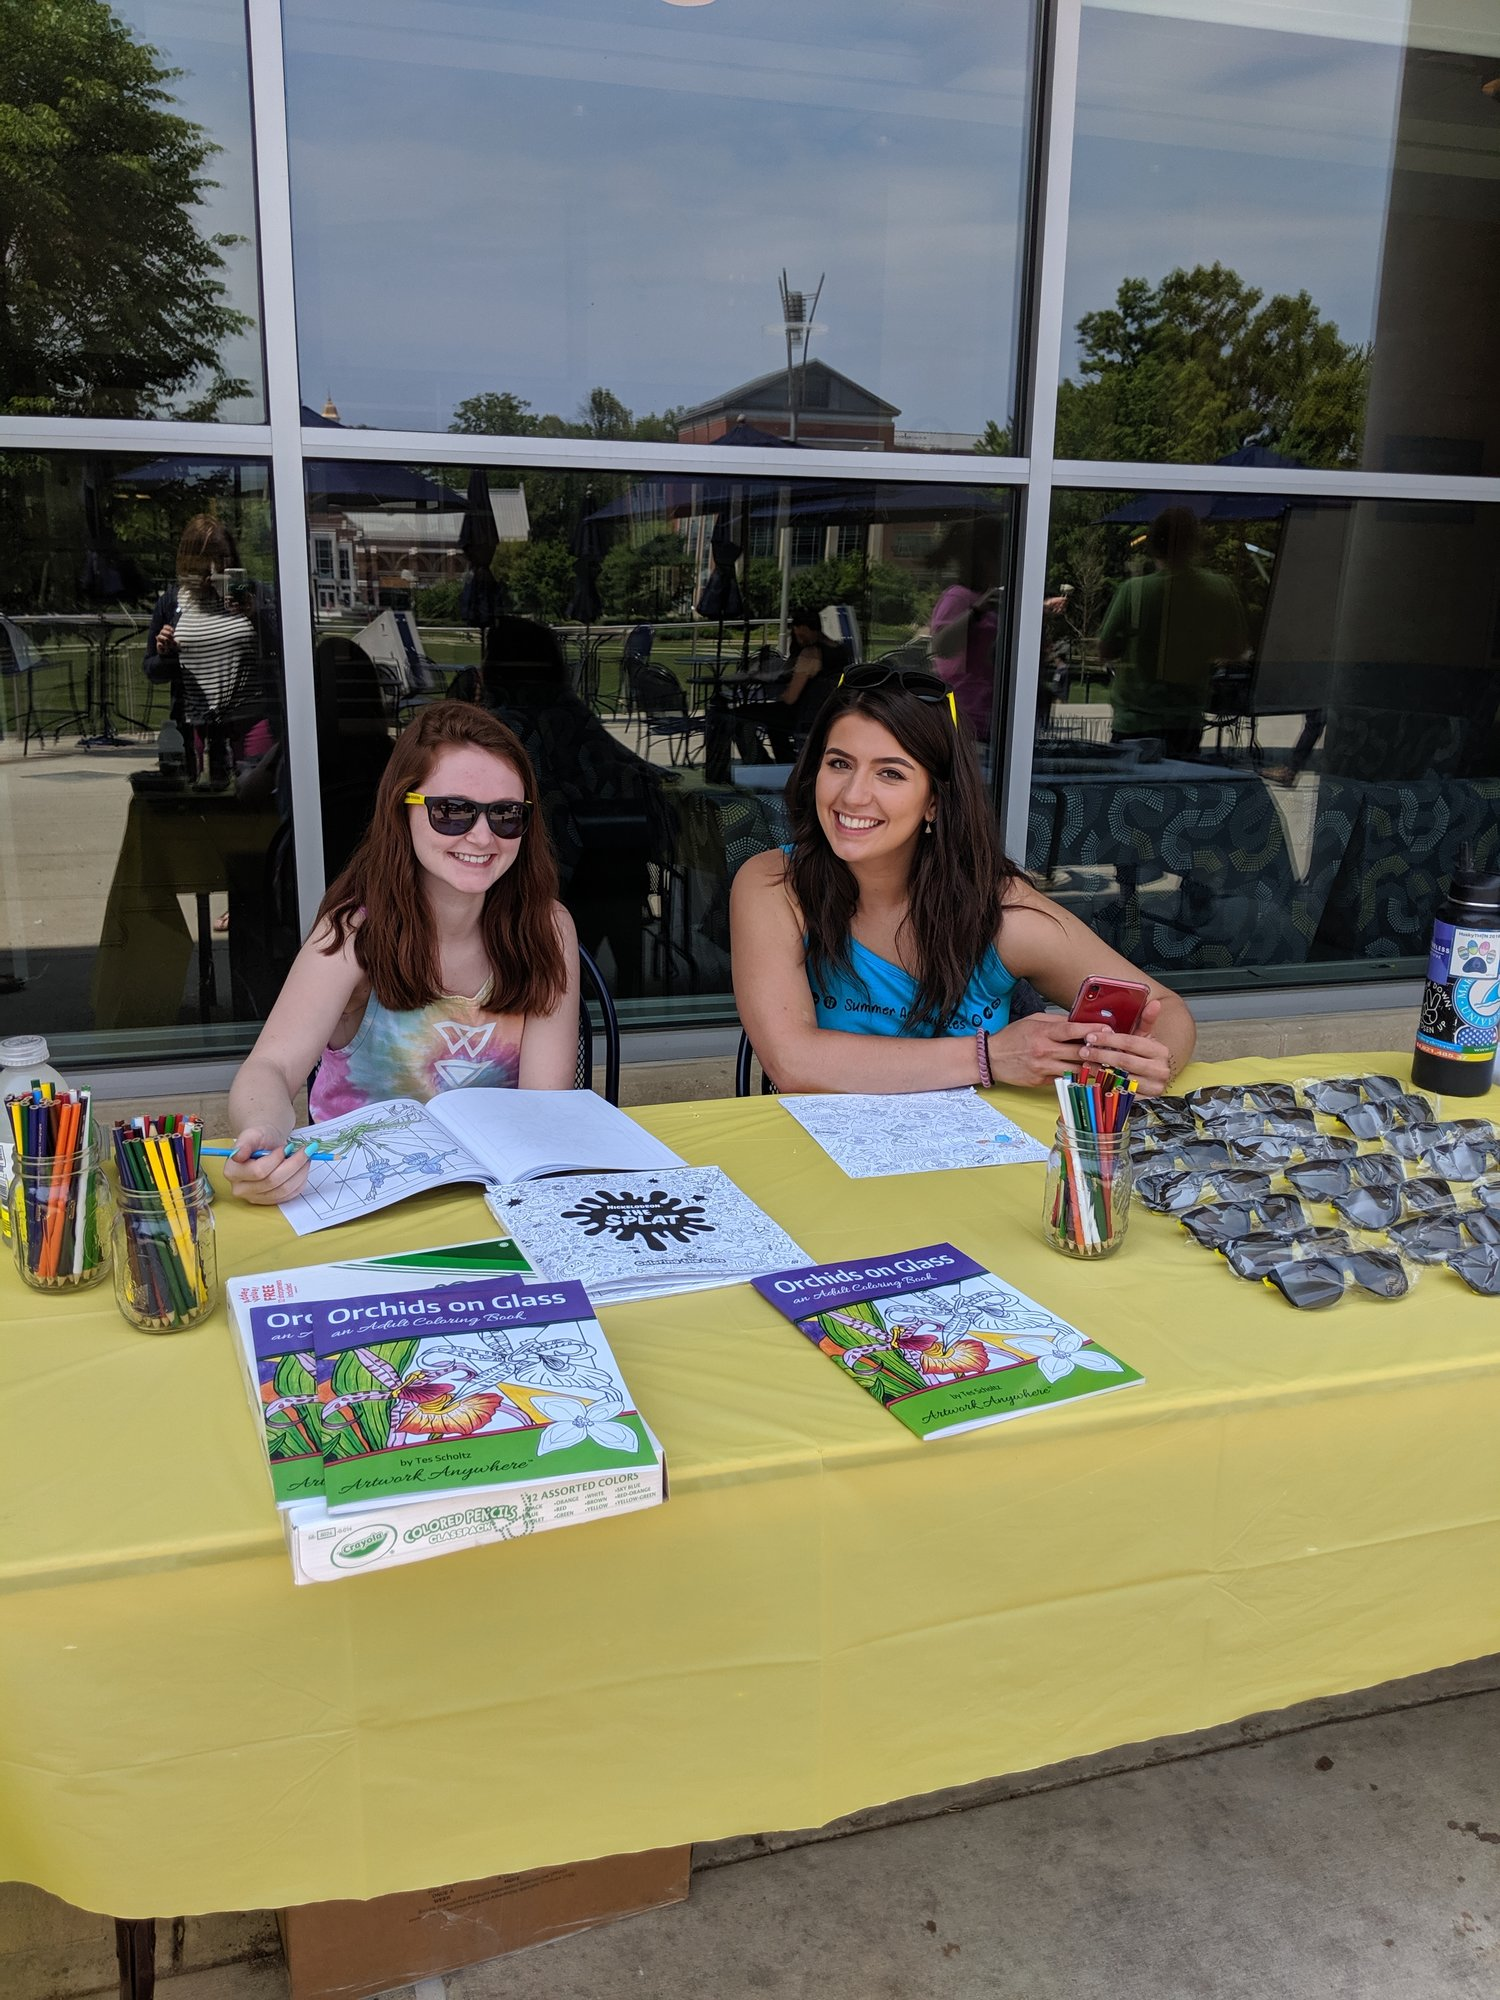 Summer Activities keeps summer students entertained — The Daily Campus